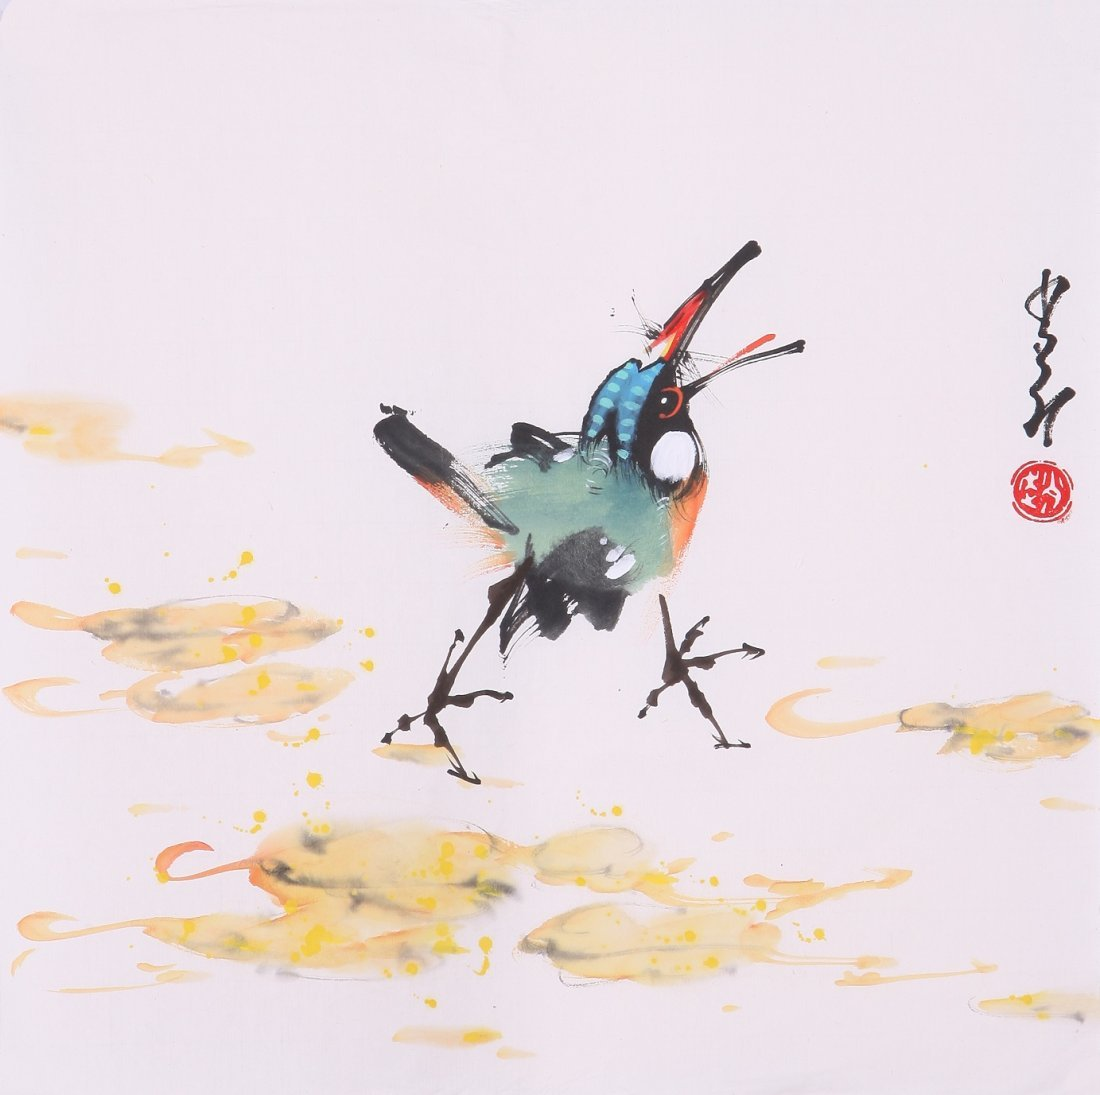 8020: Very fine chinese painting by Zhao Shaoang